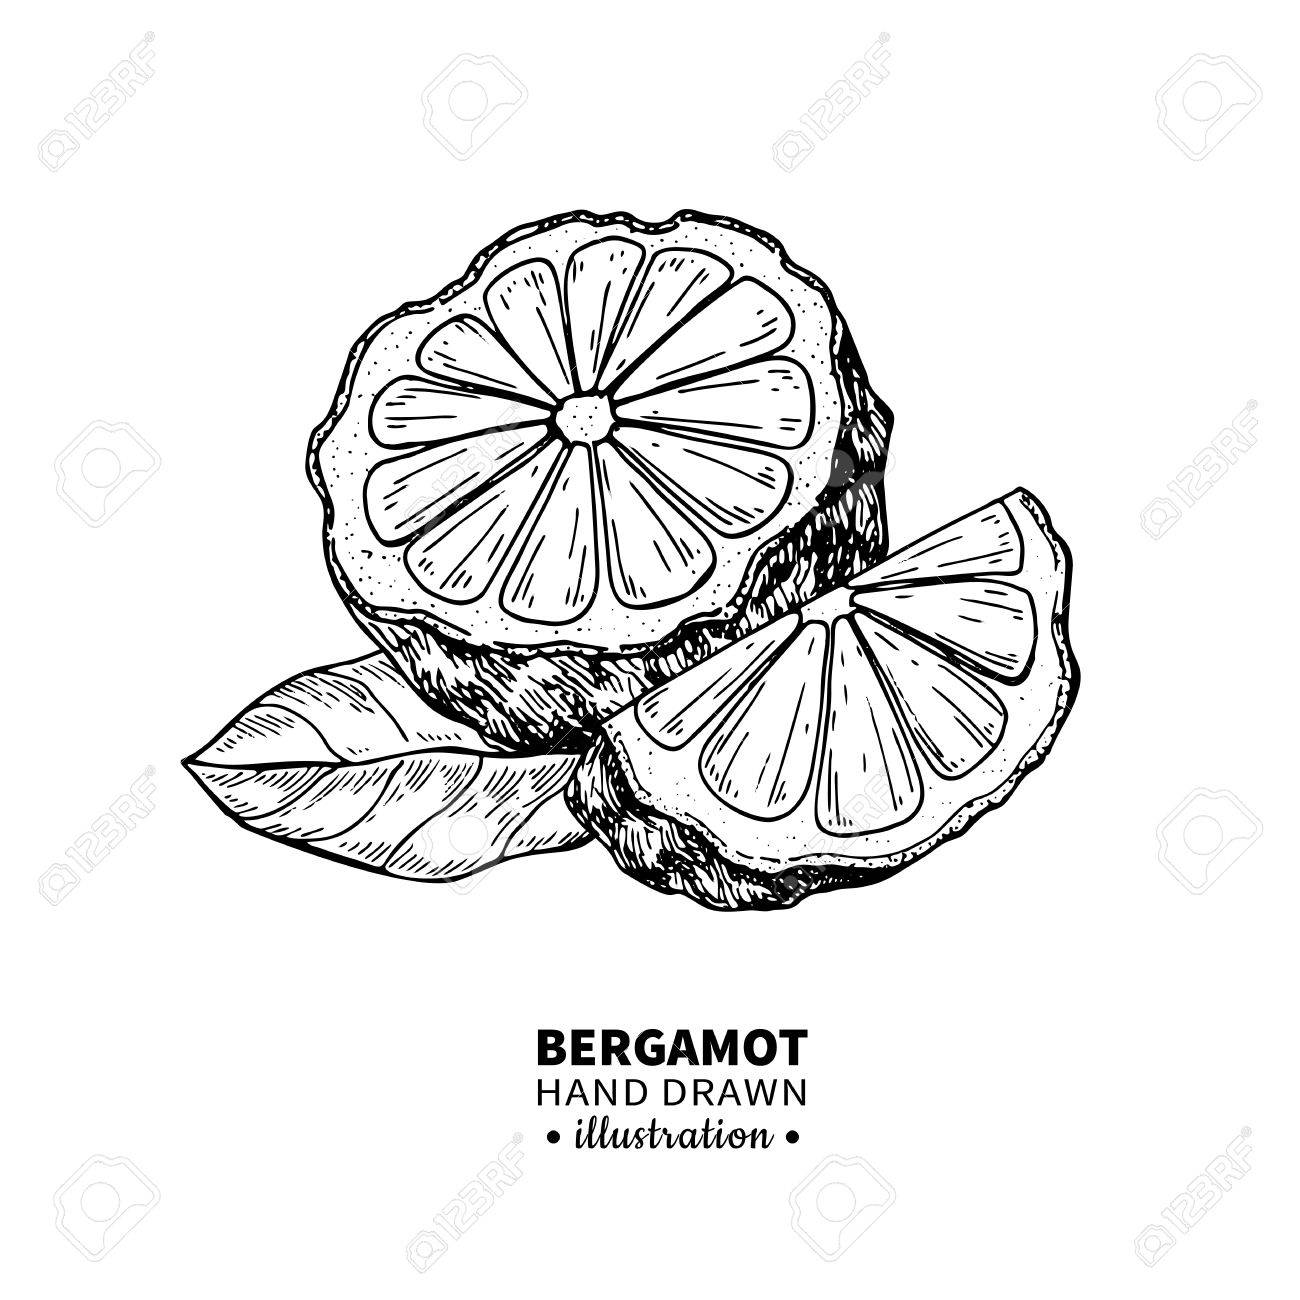 1300x1300 Bergamot Vector Drawing. Isolated Vintage Illustration Of Citrus